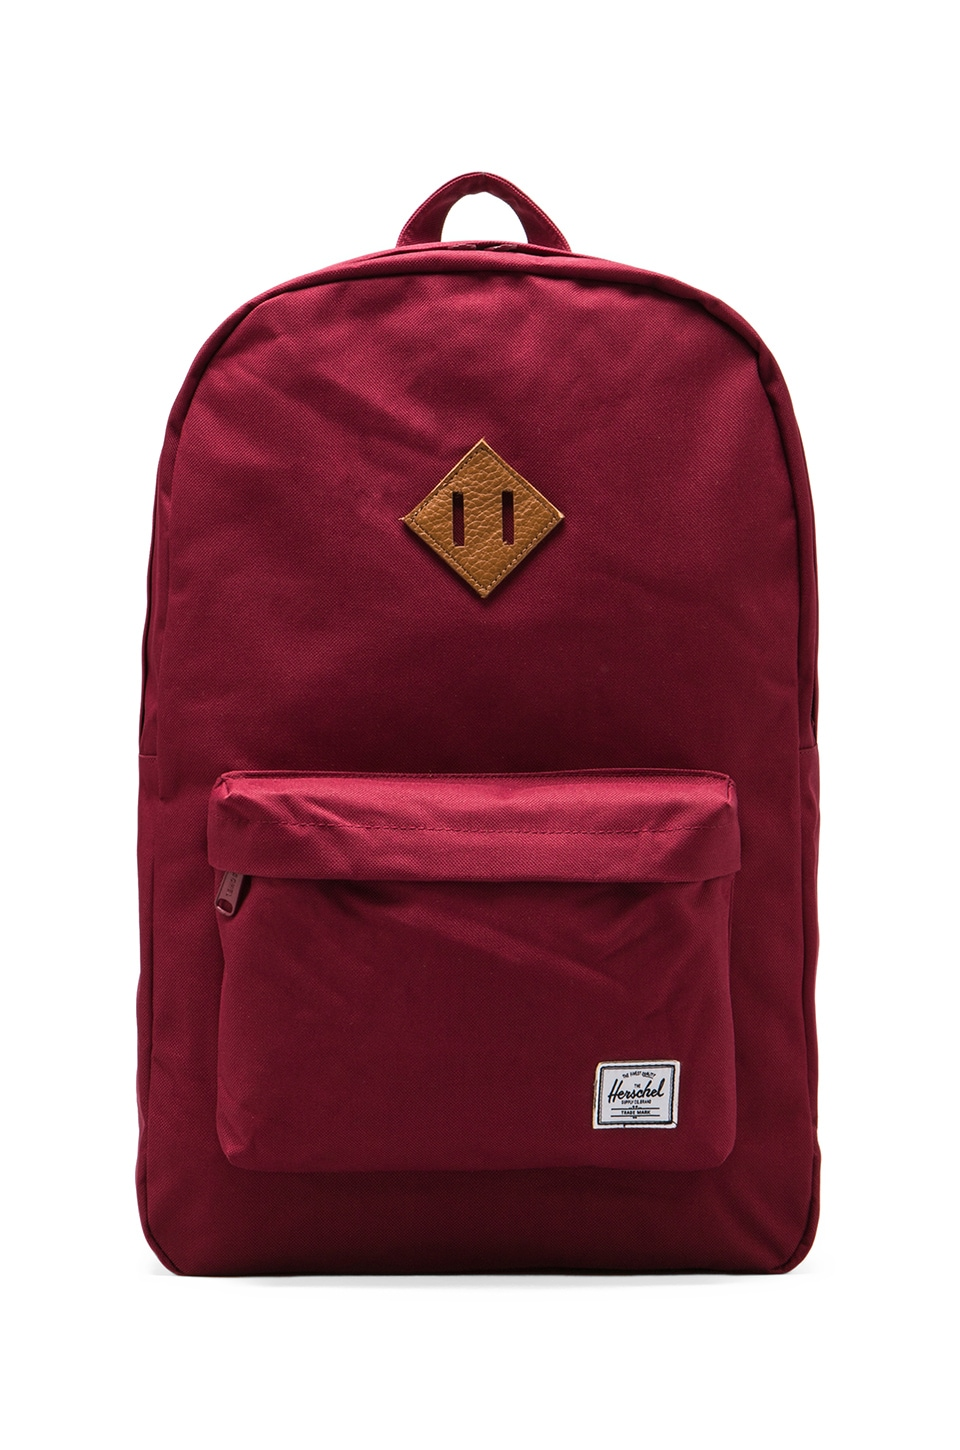 Herschel Supply Co. Heritage Backpack in Burgundy